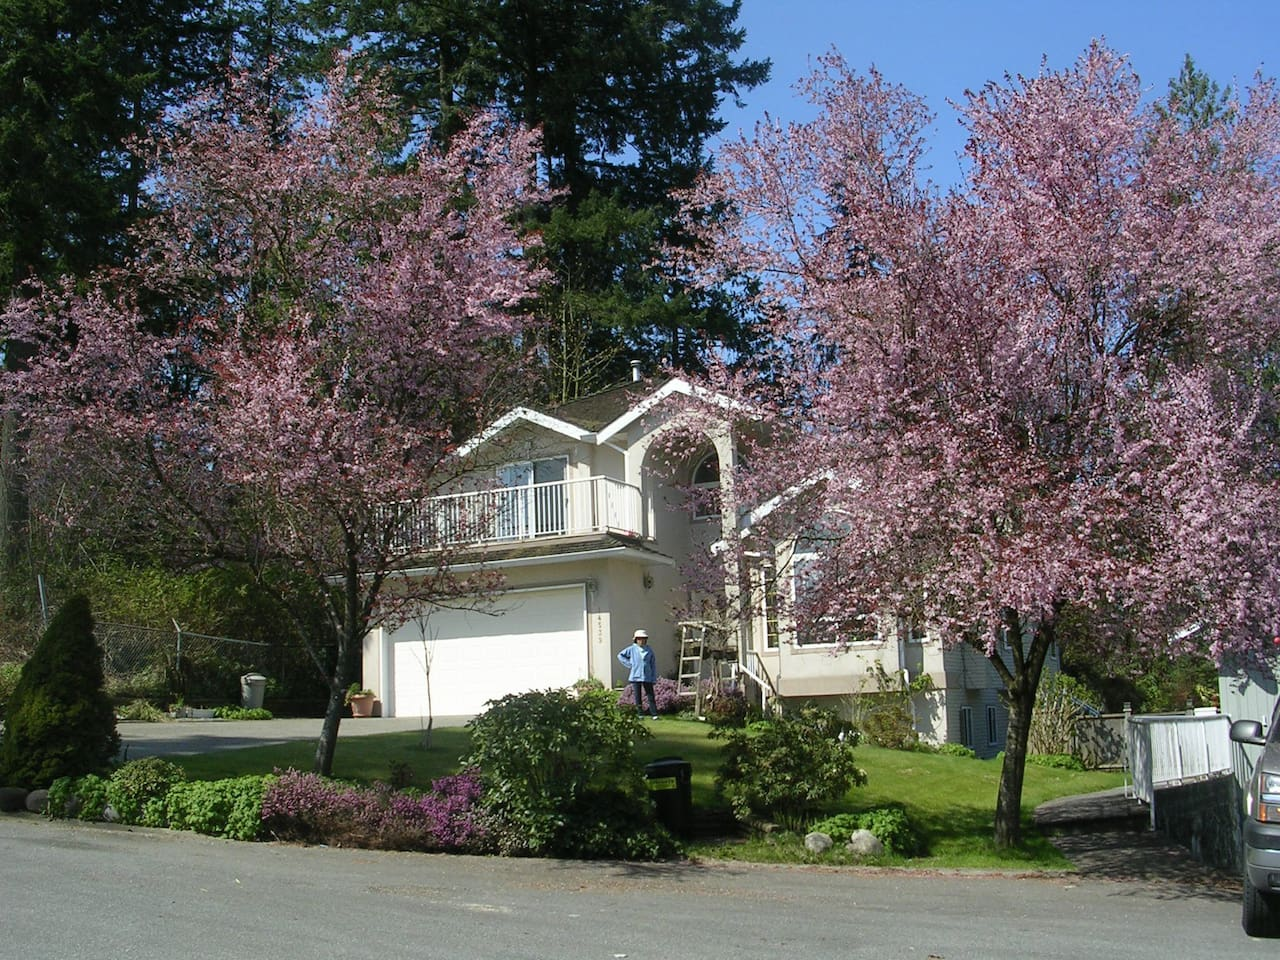 front of house with springtime cherry trees in bloom